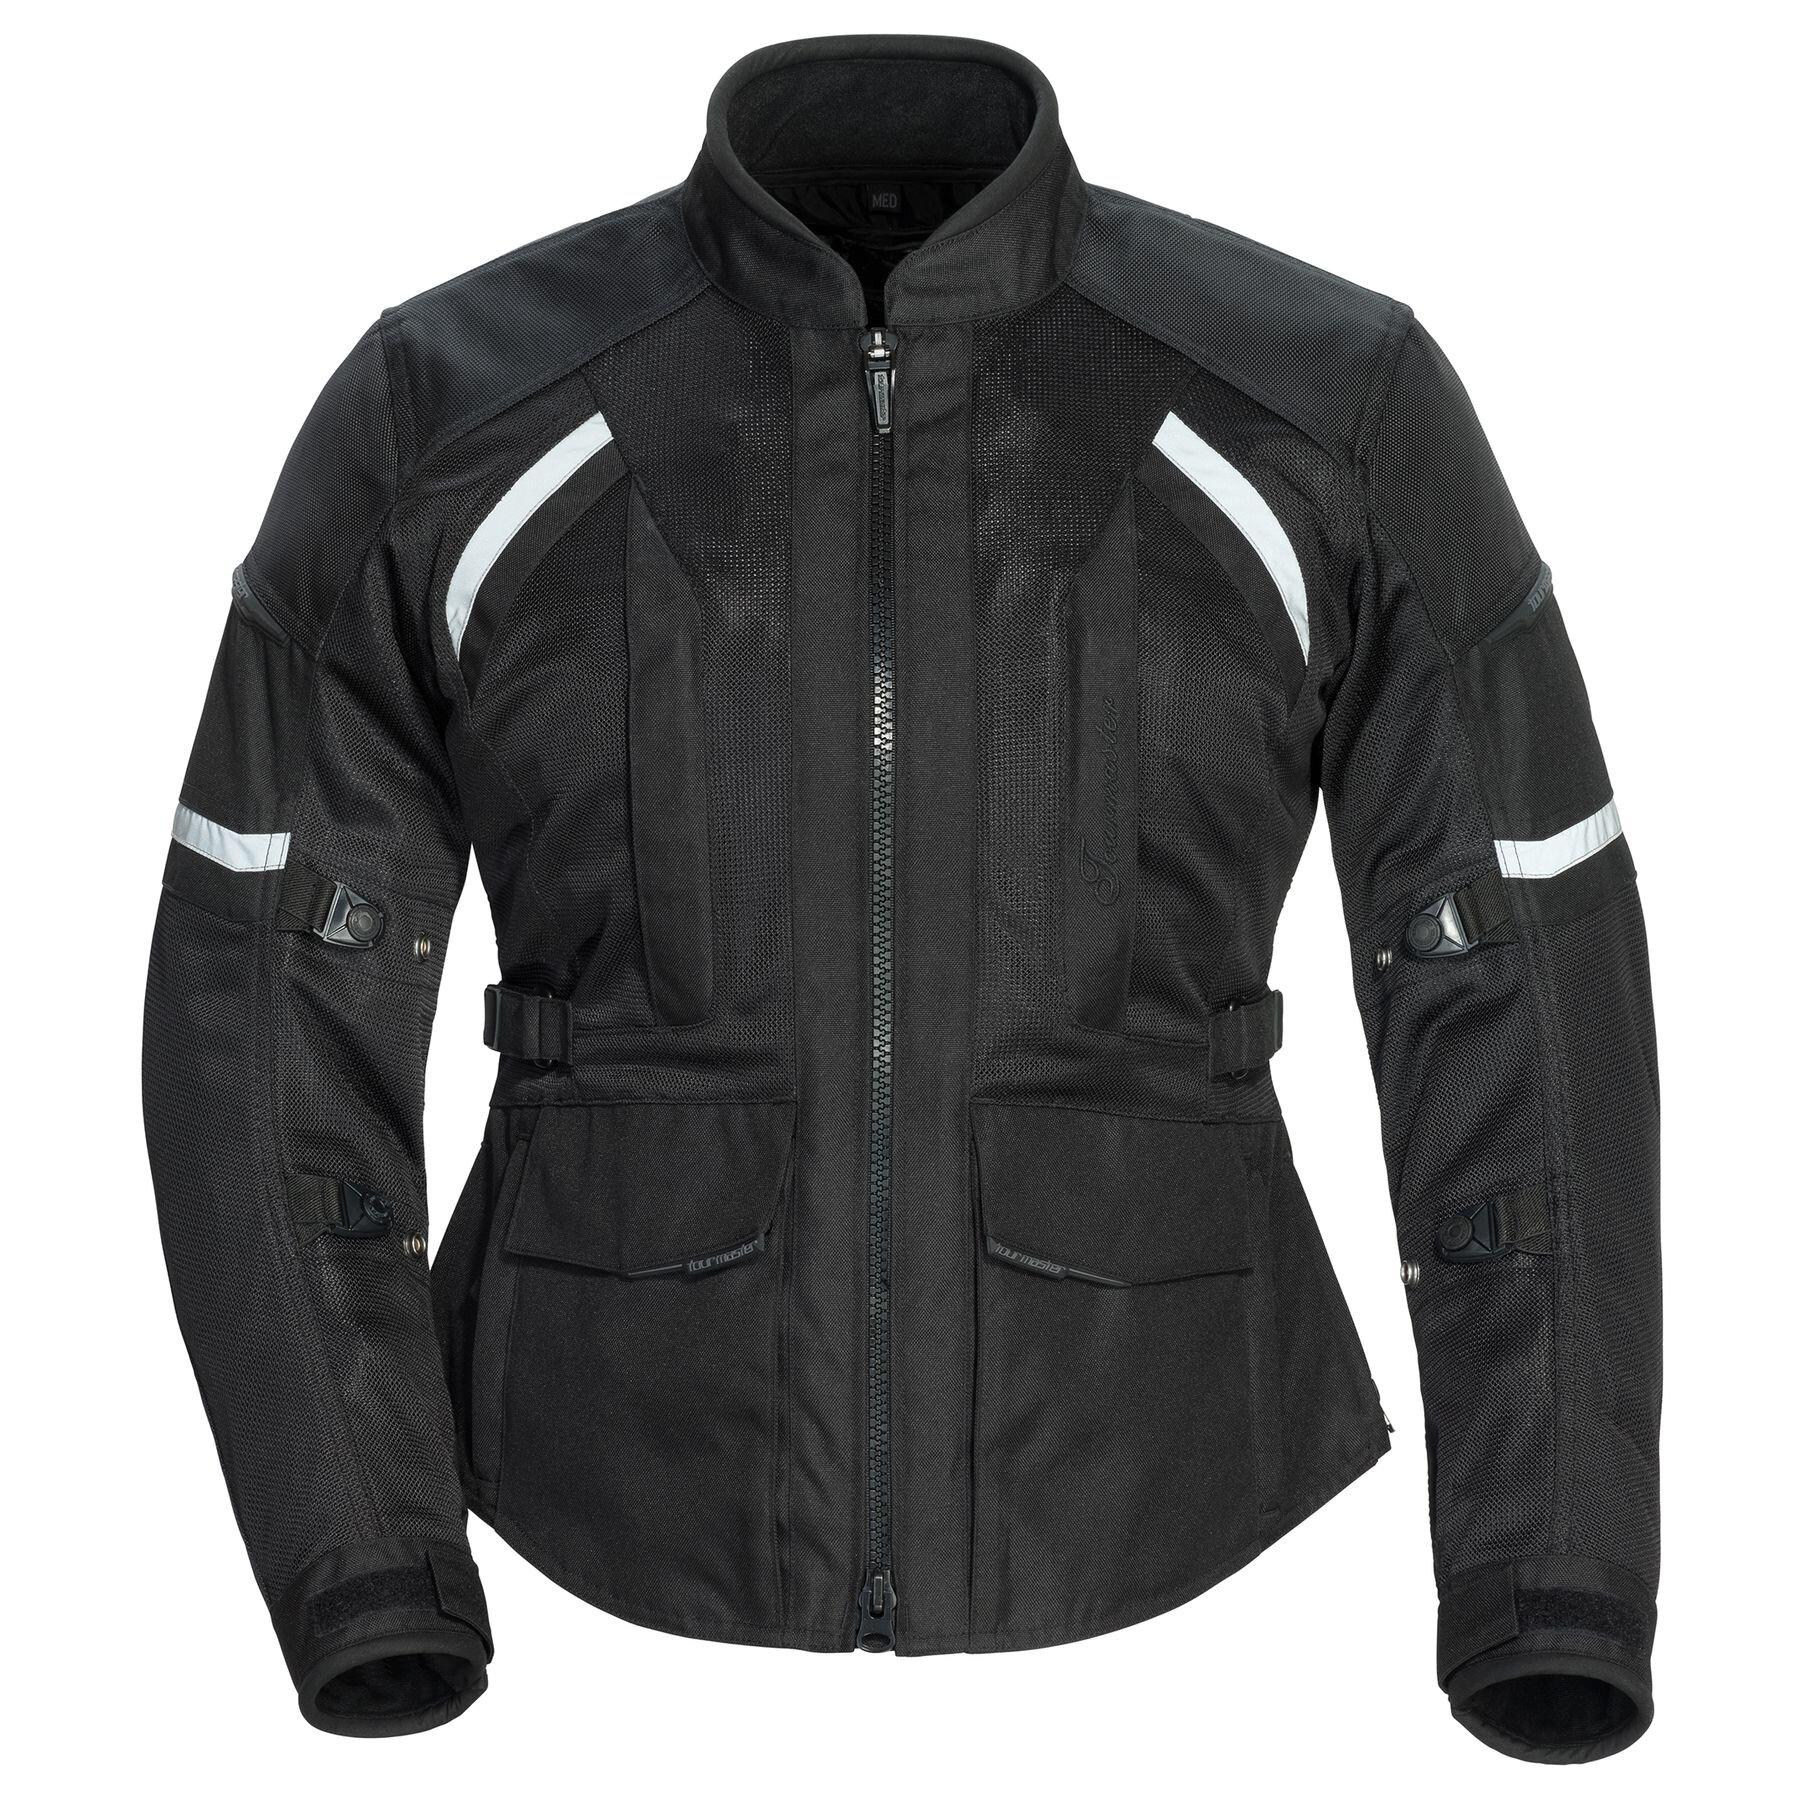 """Tourmaster Sonora Air     In addition to regular sizes, XS-XL, this is offered in Plus S-XL. I've had great luck with this jacket, and in a Plus XL I have been able to size a woman with a 51"""" chest and 50"""" waist. It's one of my favorite go to's in this category. It's a summer weight, mesh jacket with removable liners for Summer/Spring/Fall riding. This one has a nice long cut, (see the big square pockets) in the front and the back. The Plus sizes are ideal if you are less than 5'5"""" or so and don't want to size up because the sleeves and length will be too long. For example, you're 5'3"""", with a 50"""" Chest, 48"""" Waist and """"46.5 Hips; you'll fit a Plus SM. Because essentially this size will be much larger to accommodate your bust/waist size without having to size up up up to XL."""